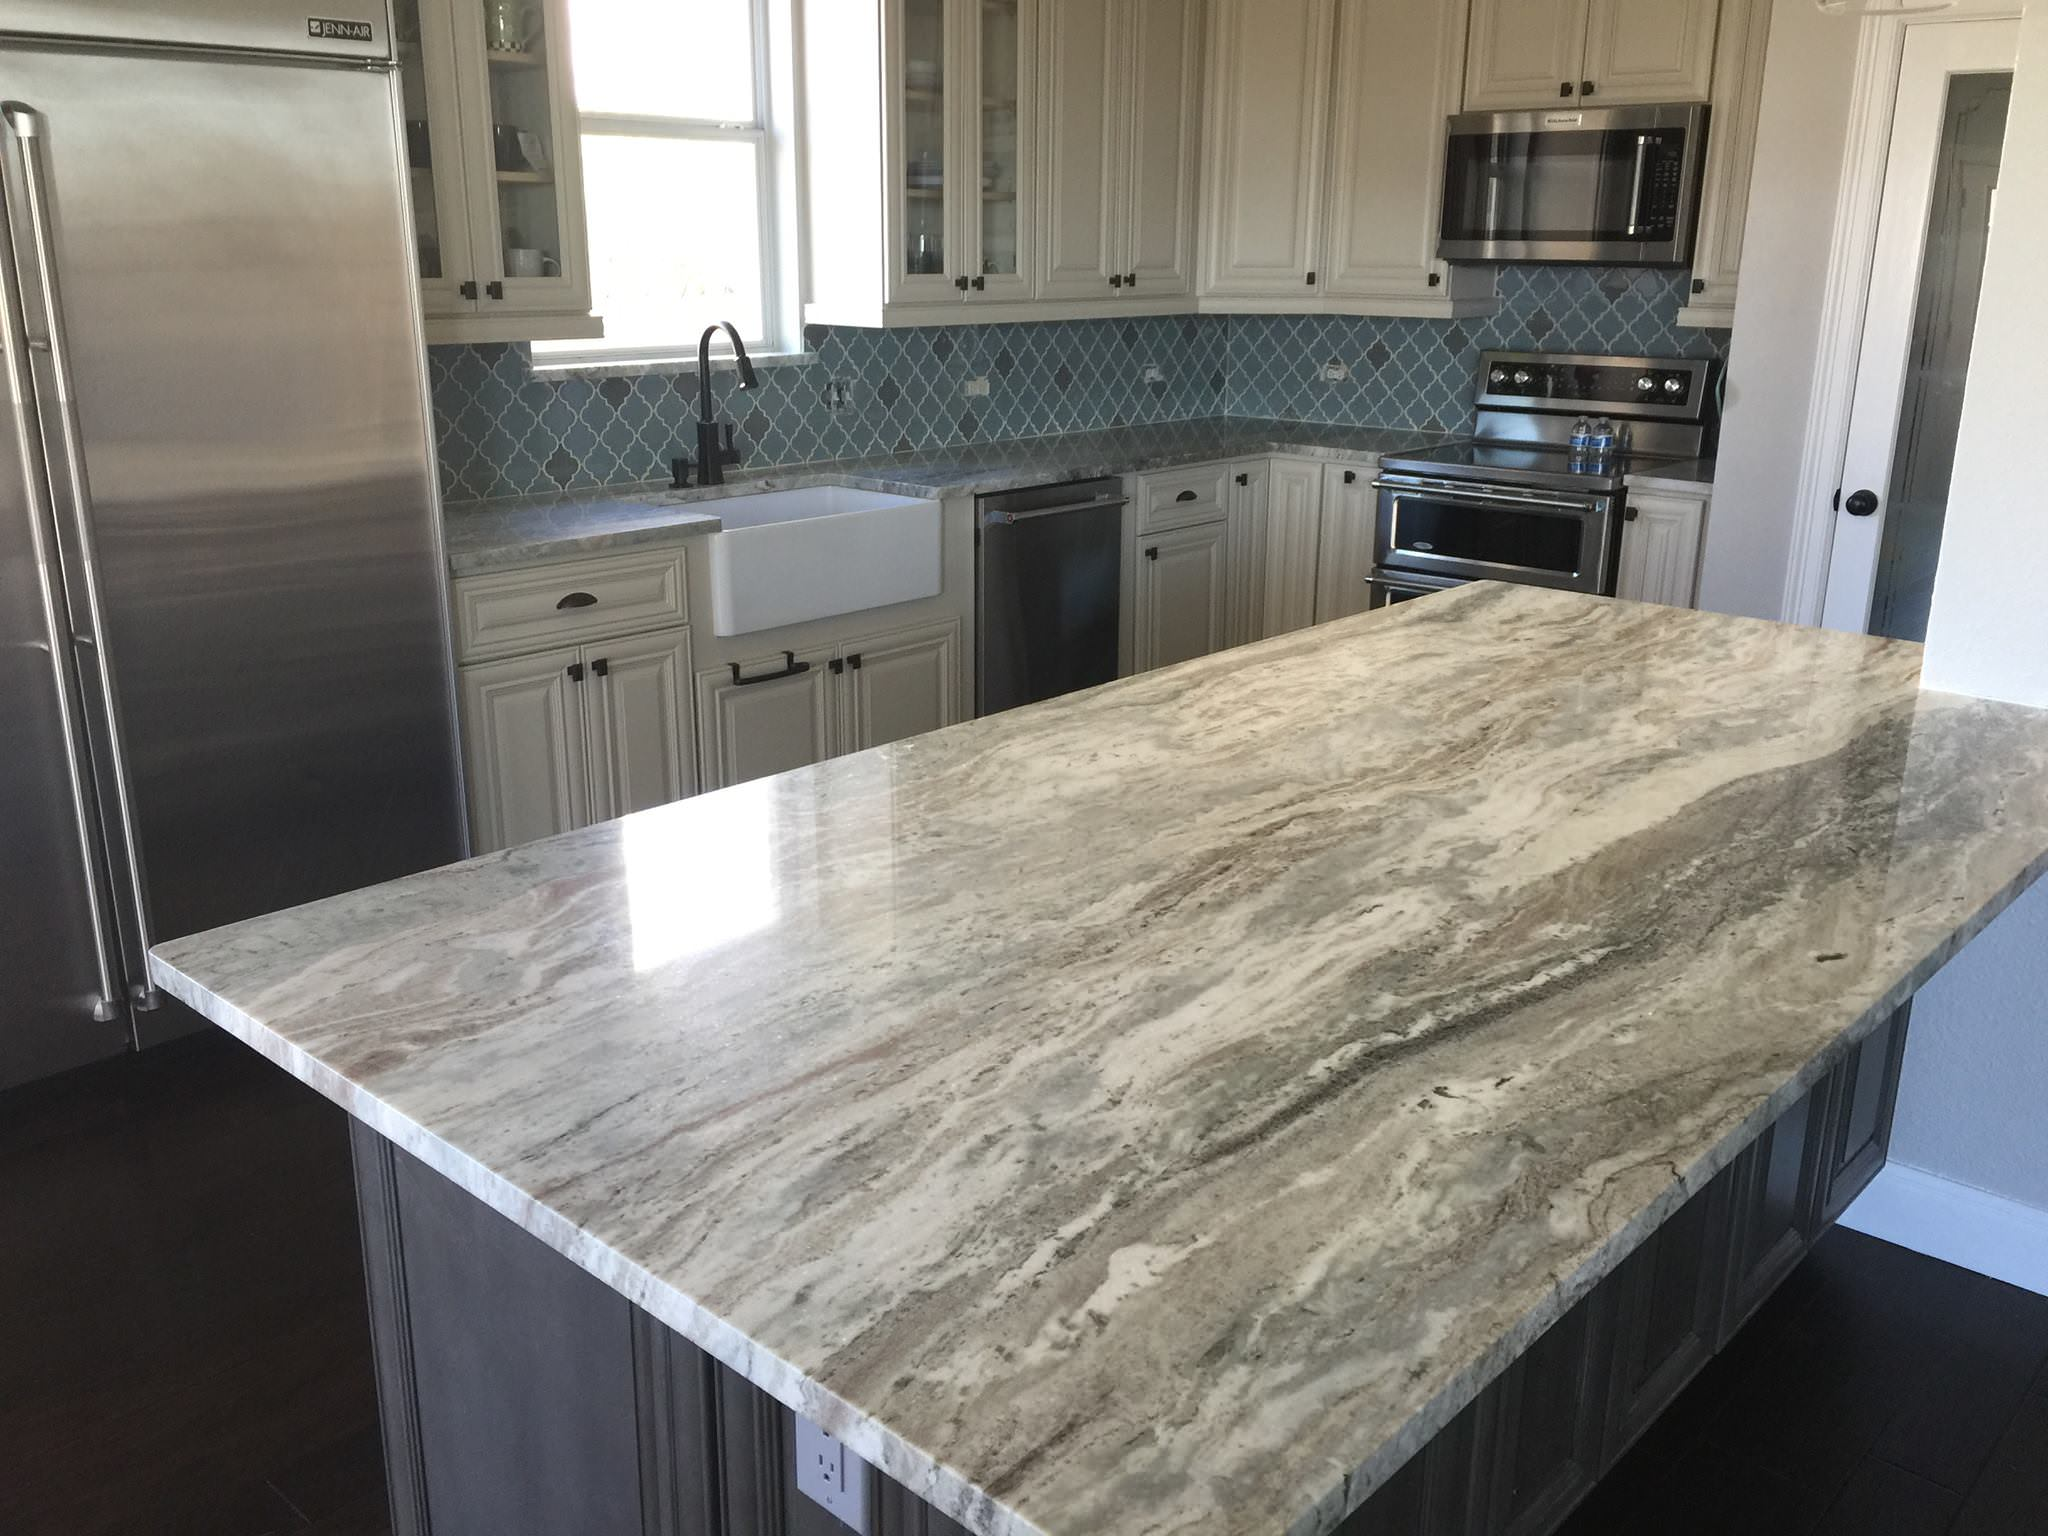 Average Cost Of Granite Countertop Fantasy-brown-island